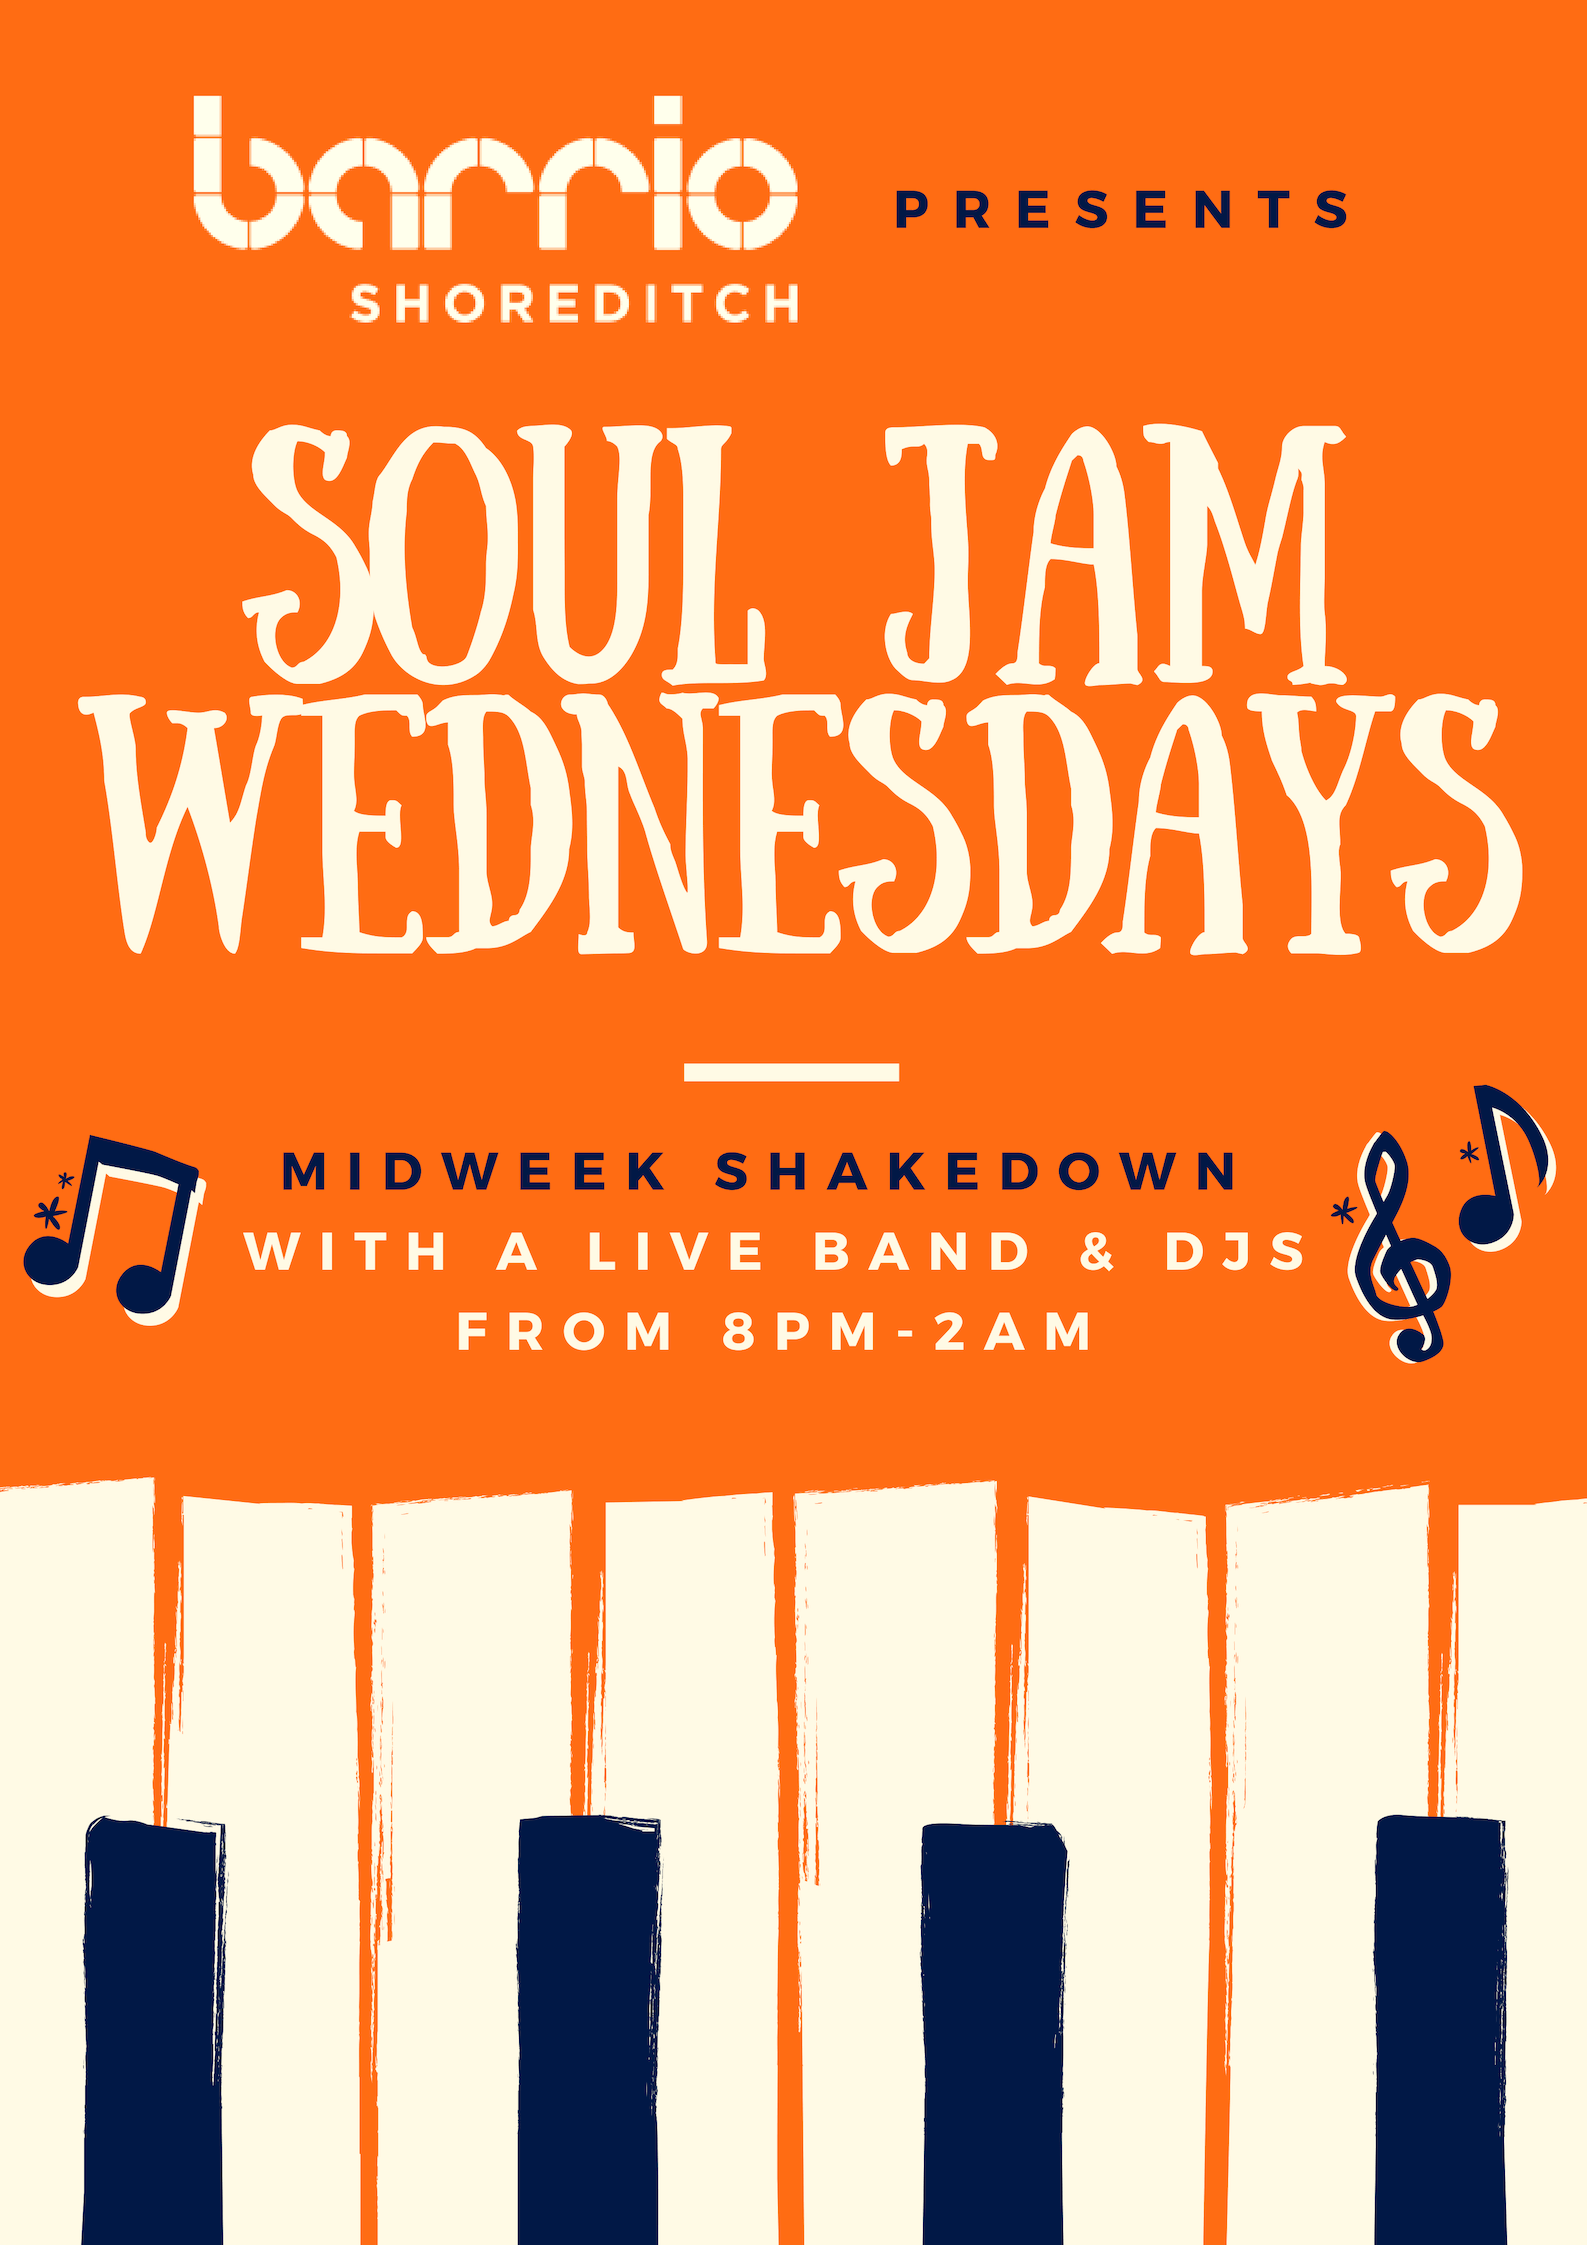 SOUL JAM - Wednesdays at Barrio Shoreditch